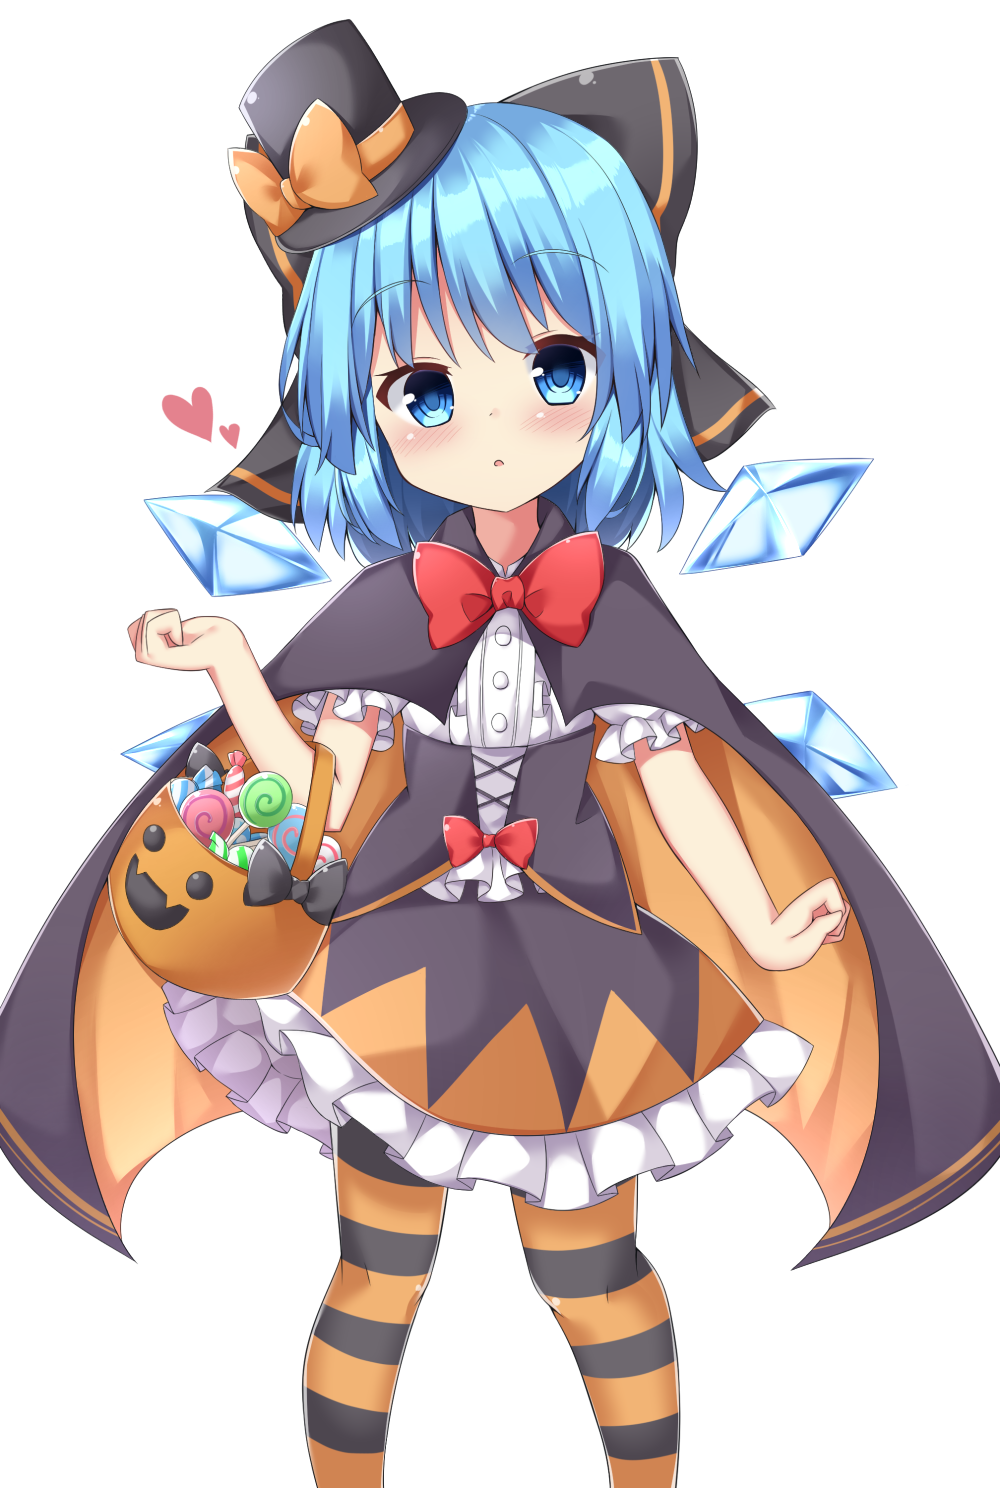 1girl adapted_costume blue_eyes blue_hair blush bow bowtie candy cape cirno corset detached_wings food frilled_shirt frilled_skirt frills hair_bow halloween halloween_basket halloween_costume hat heart highres ice ice_wings kuraaken large_bow looking_at_viewer open_mouth pantyhose shirt simple_background skirt solo striped striped_legwear top_hat touhou white_background wings